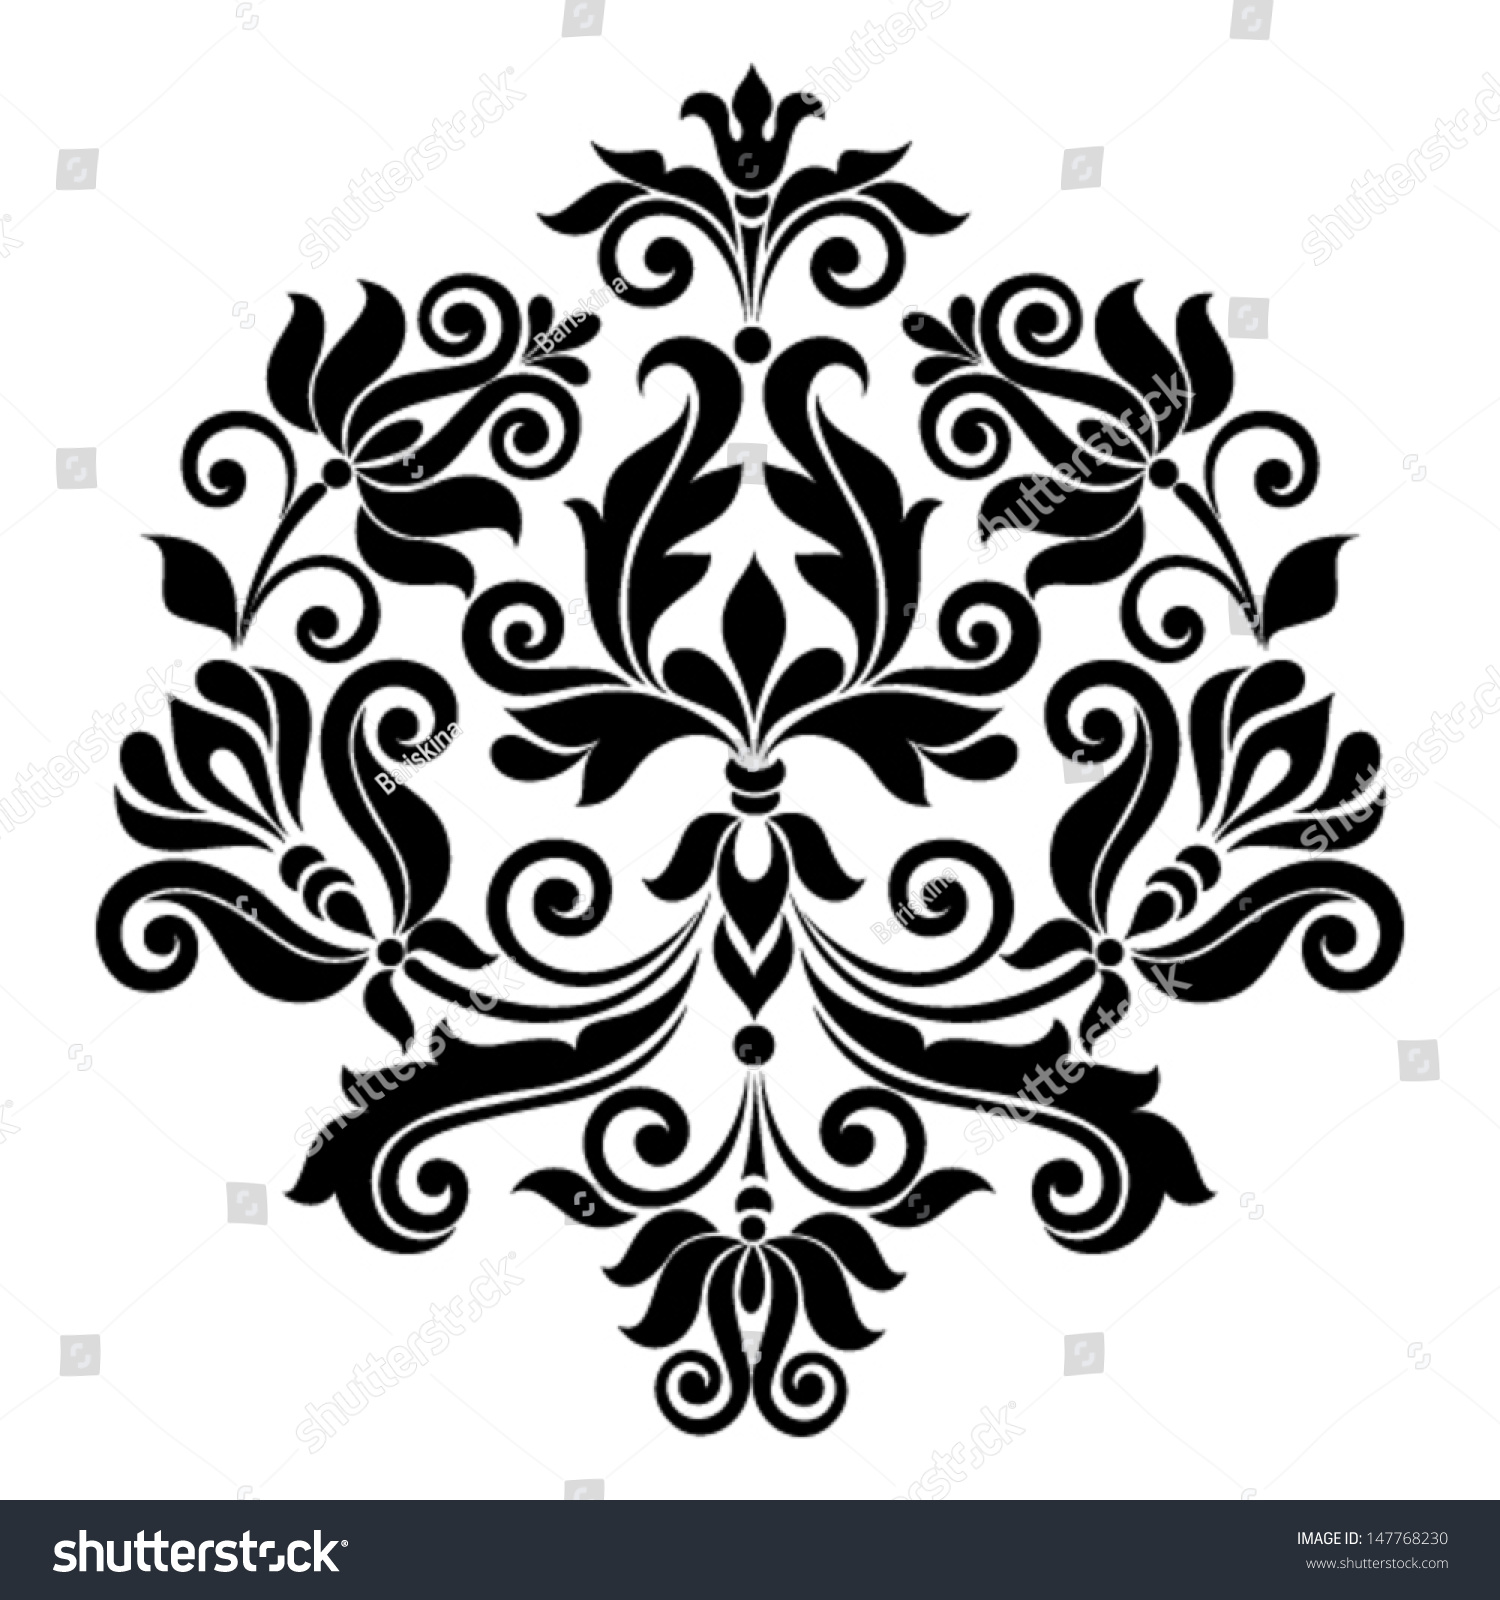 Vector ornamental floral element vintage style stock for Art for decoration and ornamentation